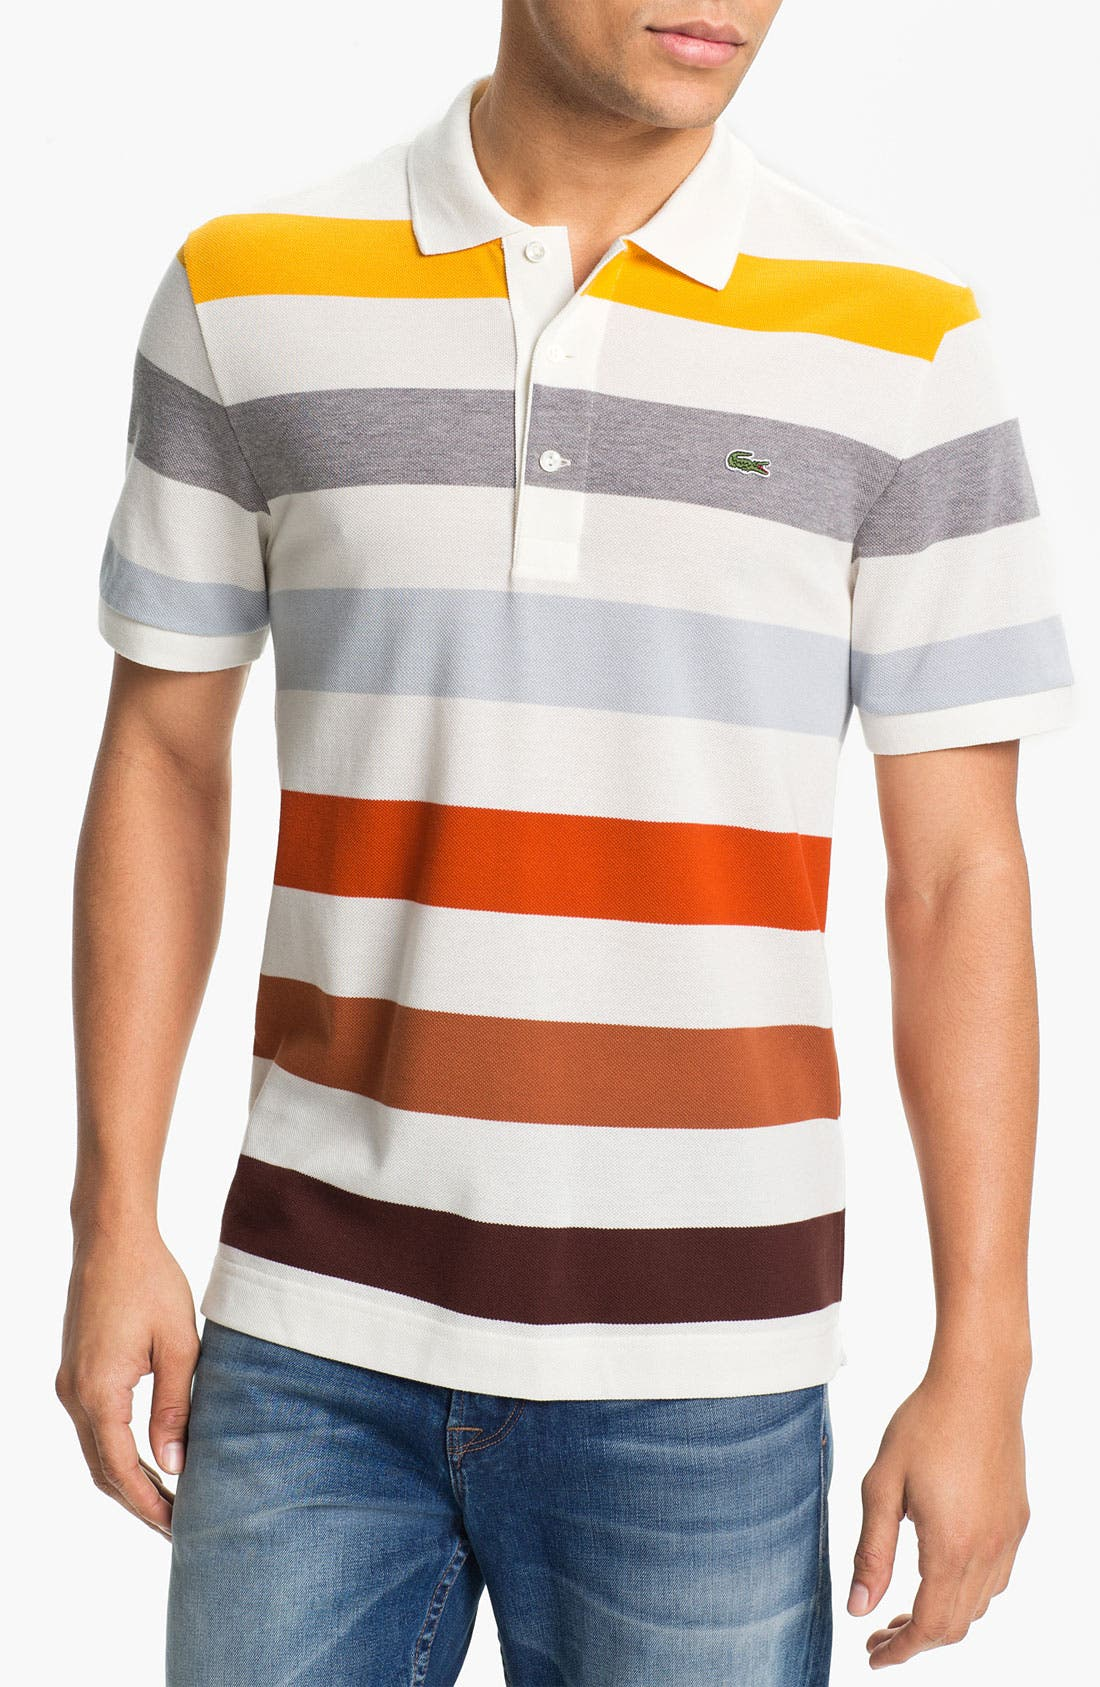 Alternate Image 1 Selected - Lacoste Bar Stripe Piqué Polo